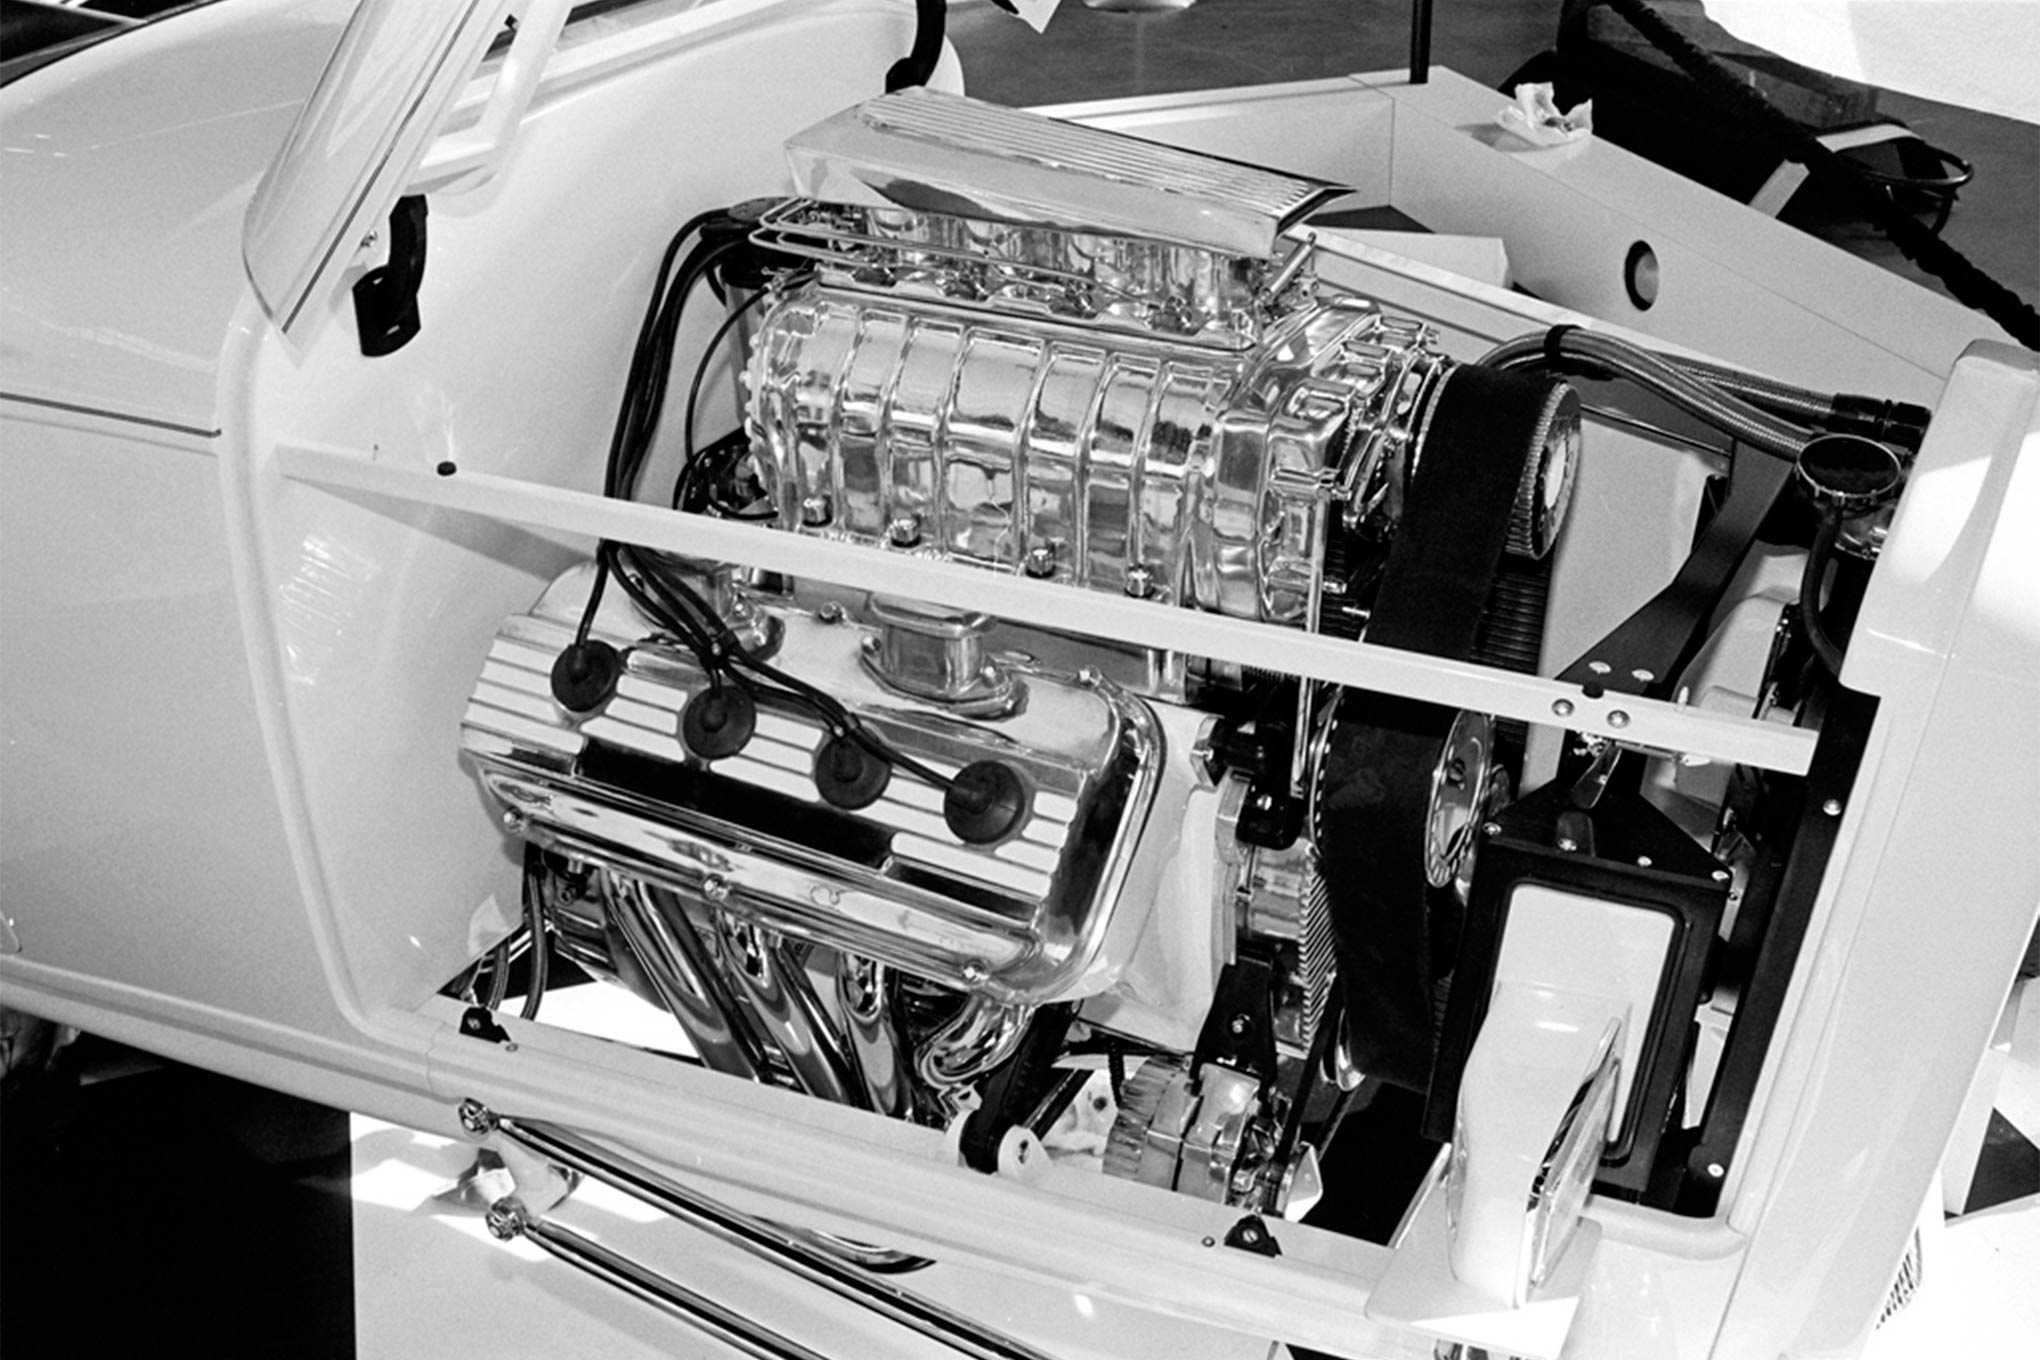 The blown, injected Hemi that enthusiasts saw in Oakland had previously powered Gary's dragster.